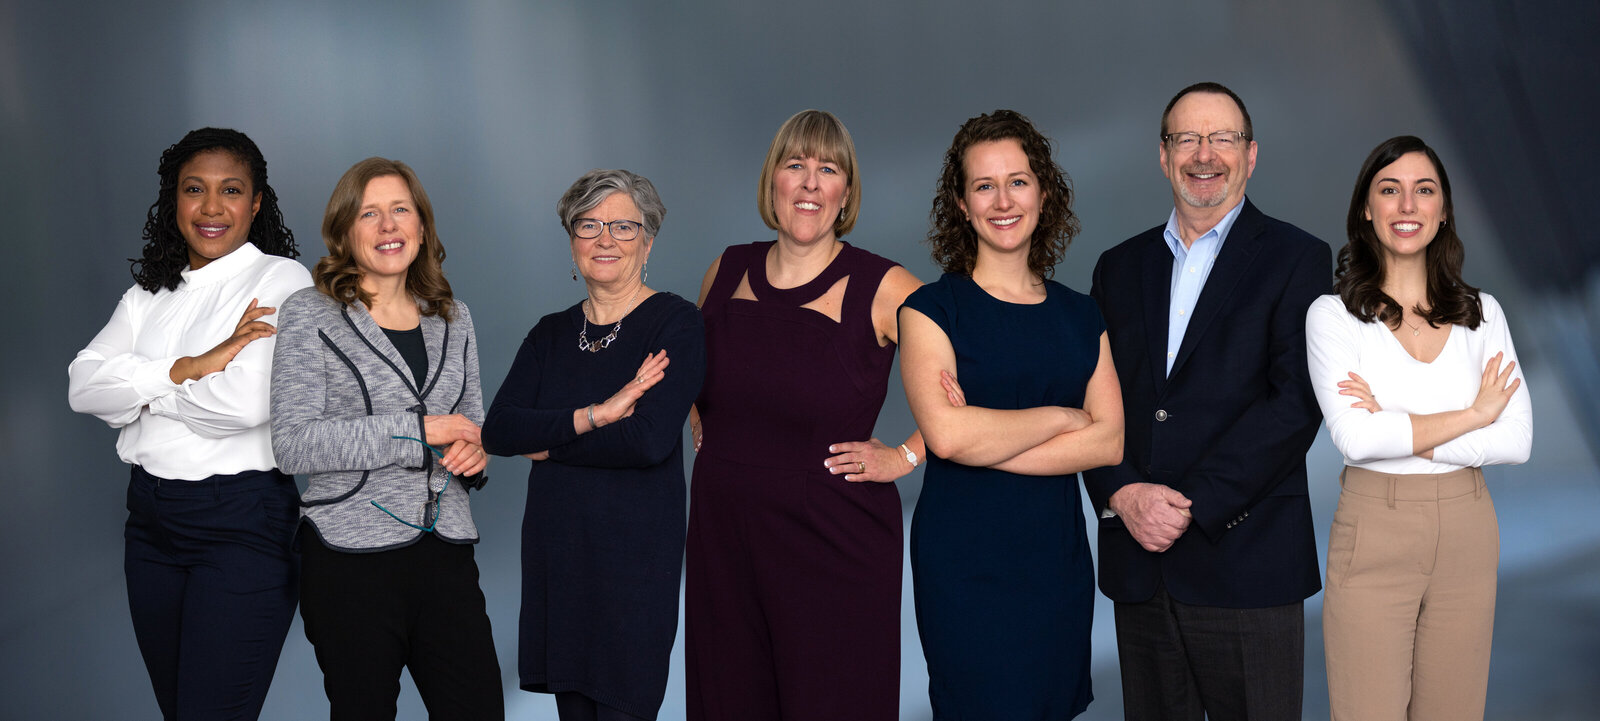 Team Composite Headshots Kitchener Waterloo